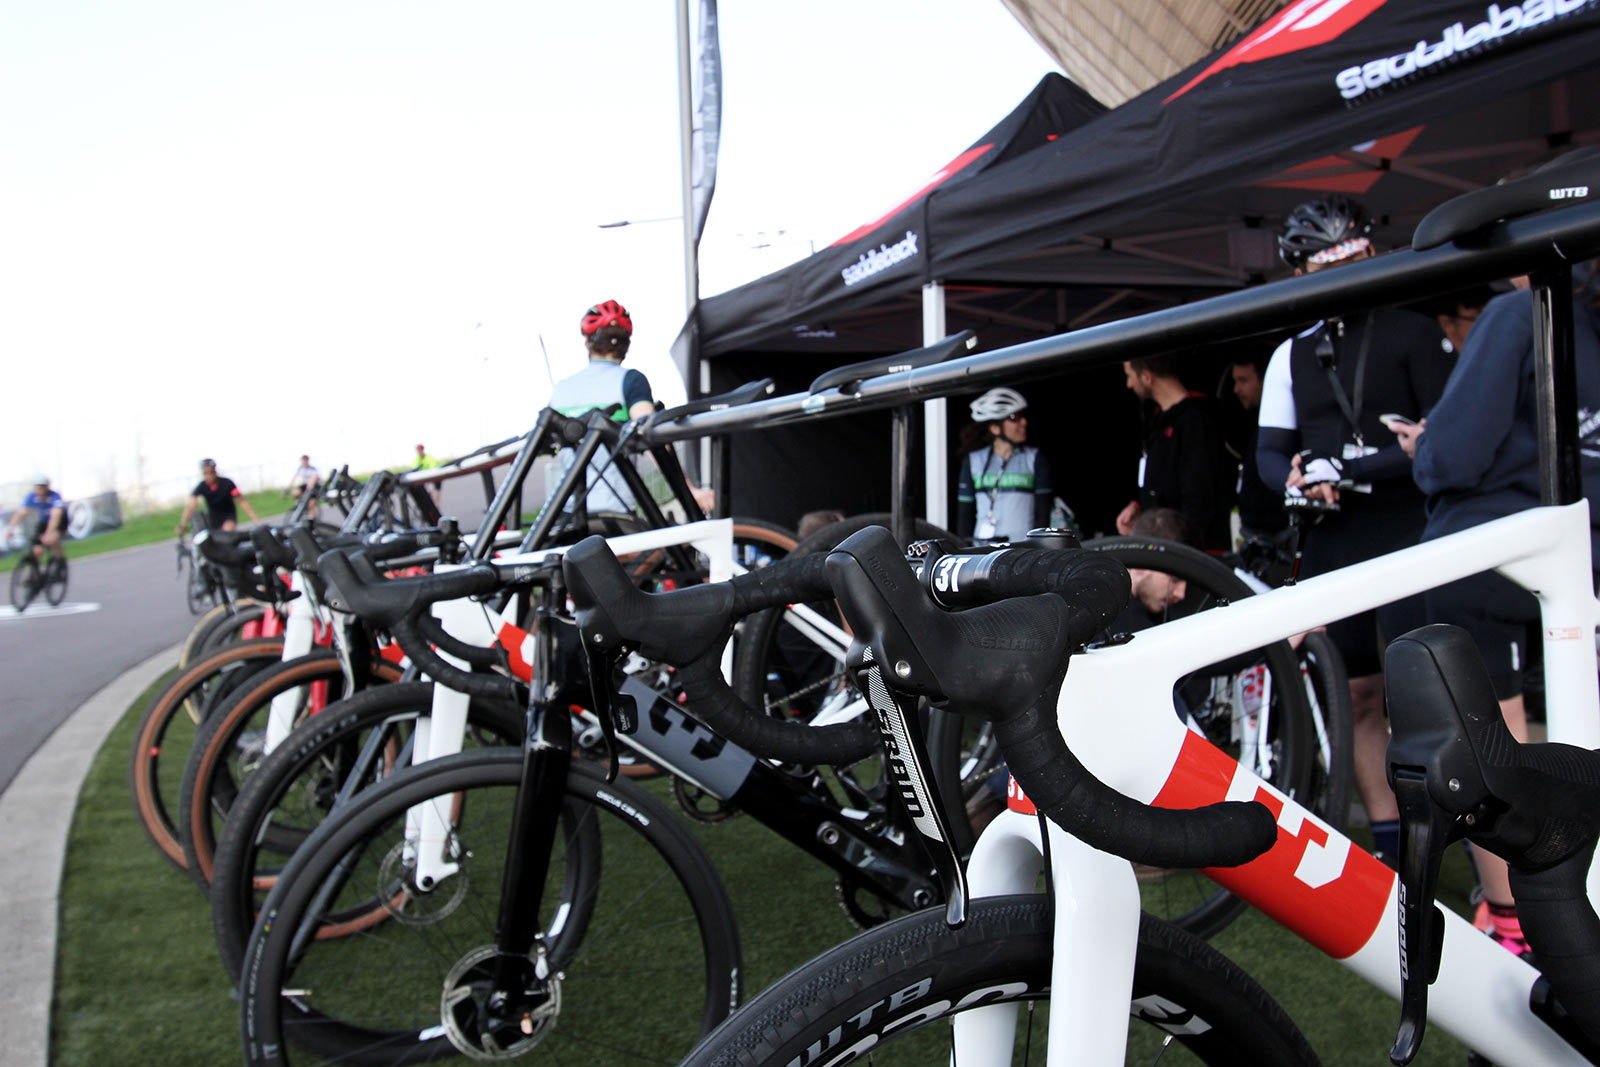 3T Causes A Stir At The First Cyclist Track Days Event